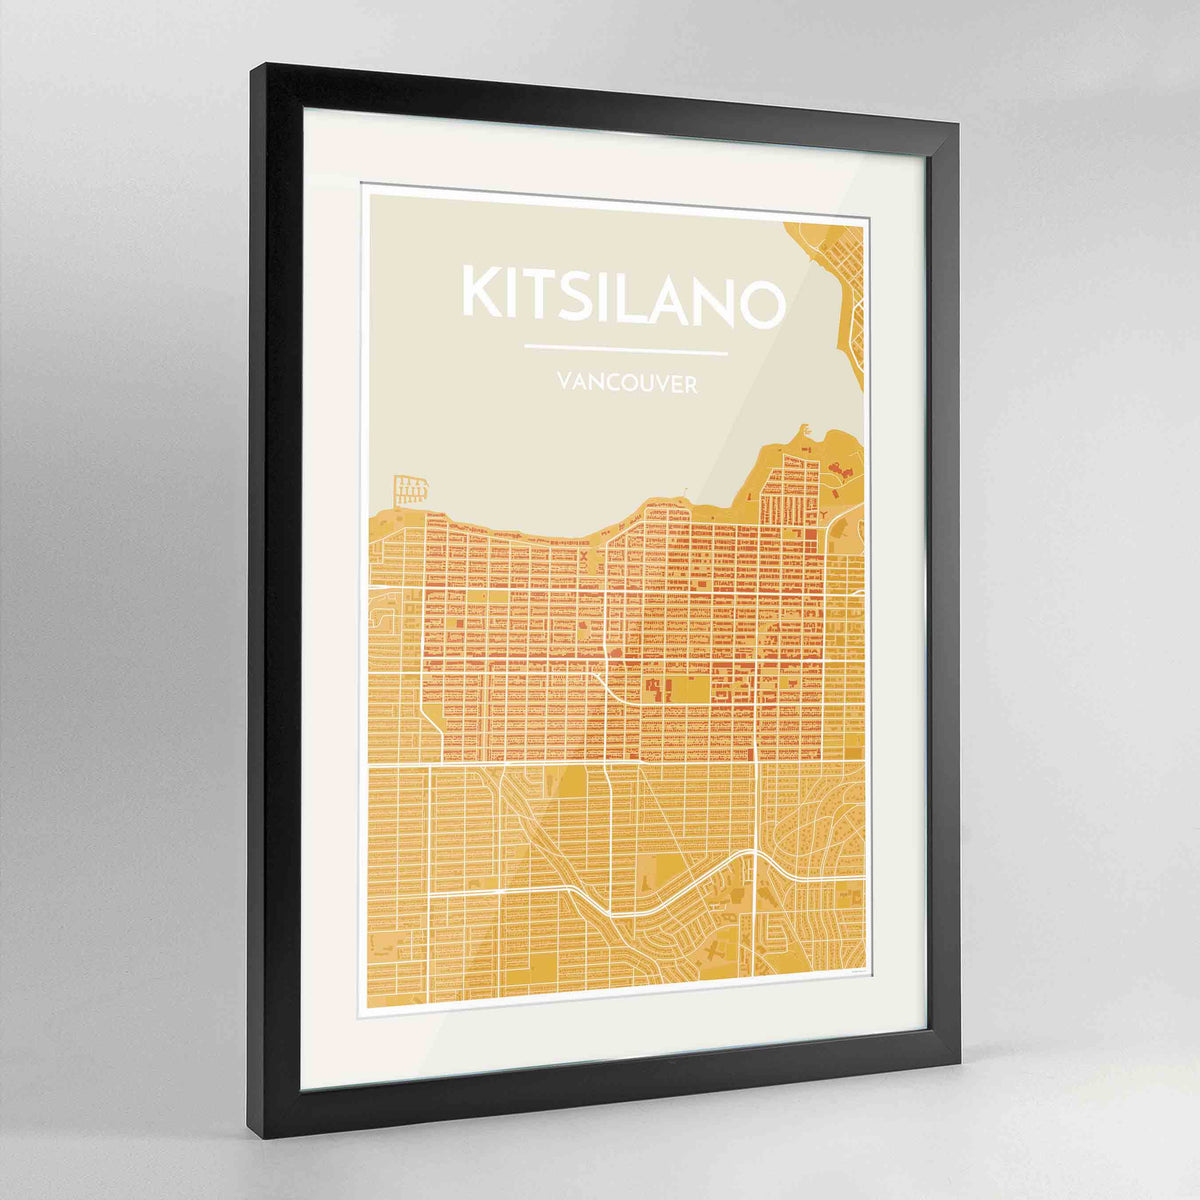 "Framed Kitsilano Vancouver Map Art Print 24x36"" Contemporary Black frame Point Two Design Group"